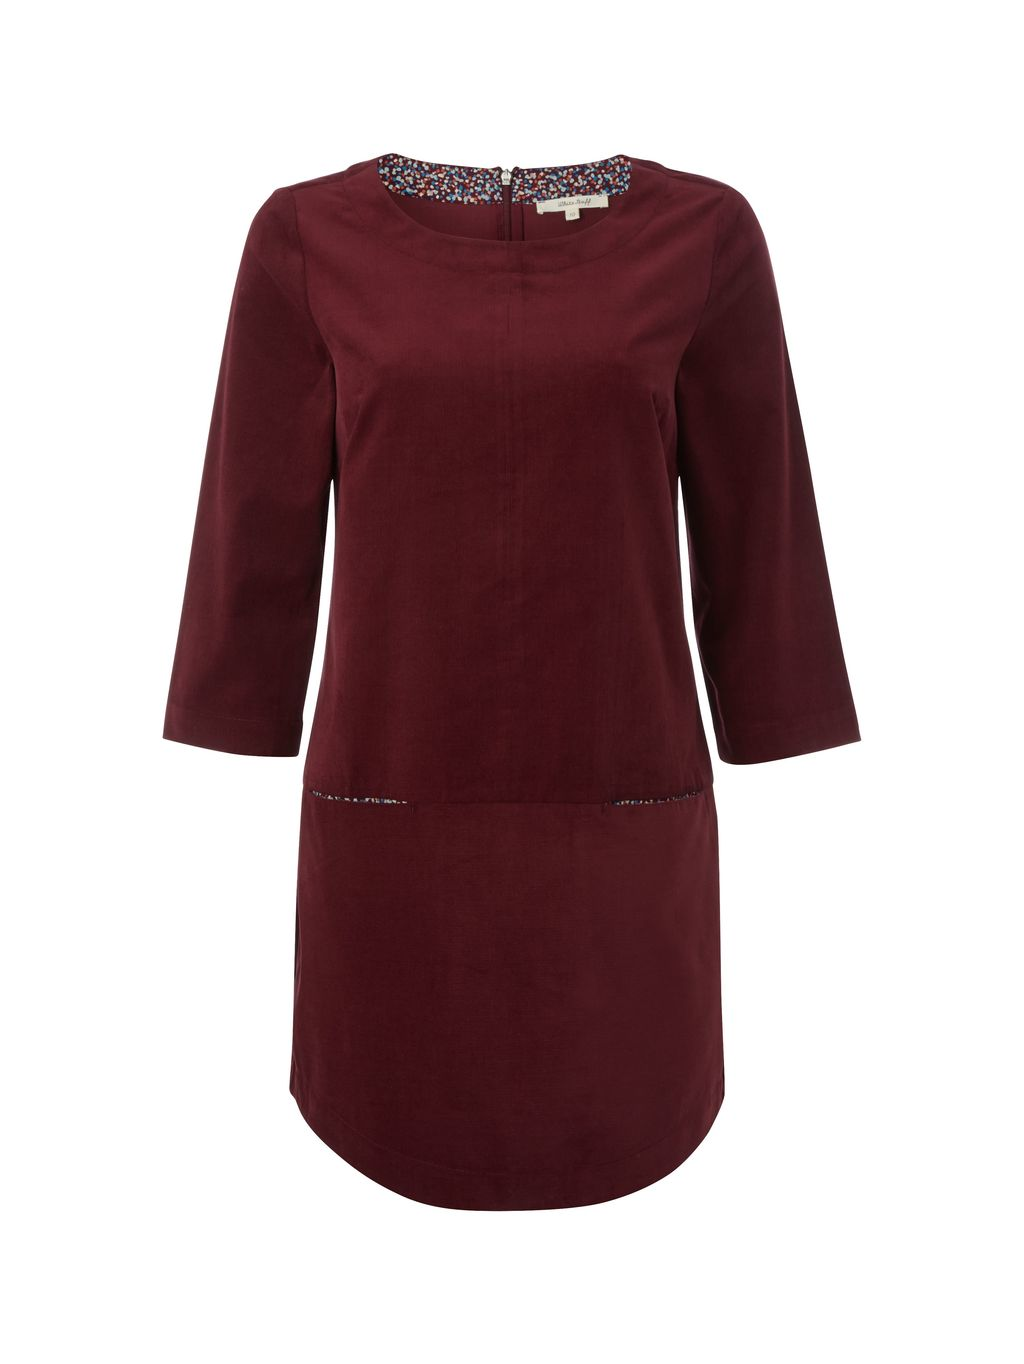 Tap Dance Tunic, Plum - neckline: slash/boat neckline; pattern: plain; length: below the bottom; style: tunic; predominant colour: burgundy; occasions: casual, creative work; fibres: cotton - 100%; fit: body skimming; sleeve length: 3/4 length; sleeve style: standard; pattern type: fabric; texture group: jersey - stretchy/drapey; season: s/s 2016; wardrobe: highlight